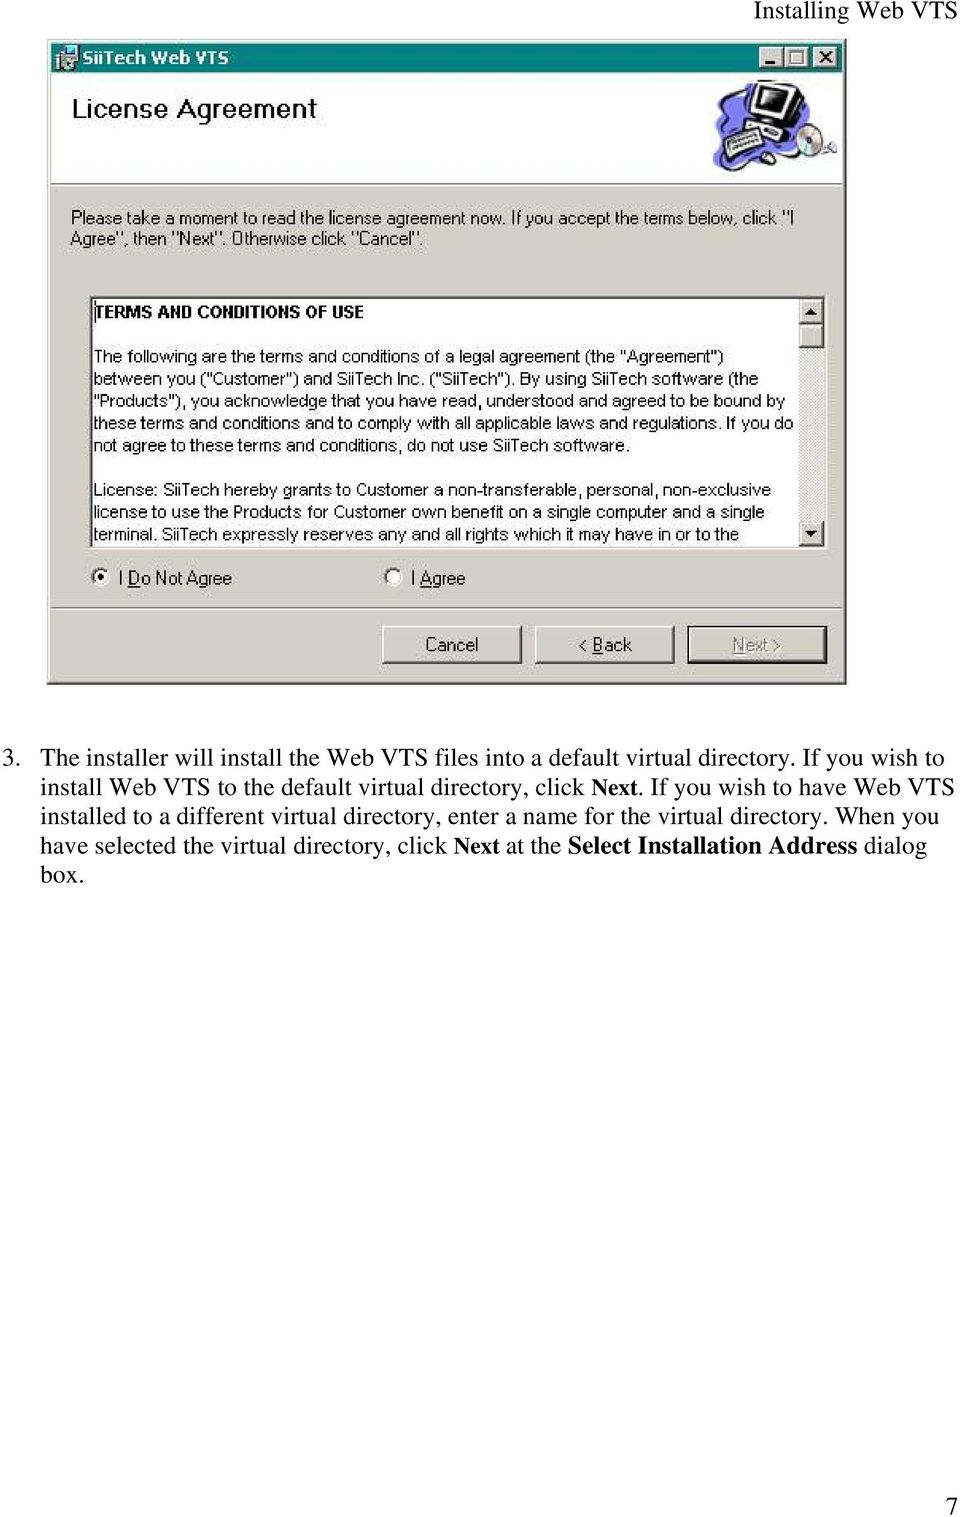 If you wish to install Web VTS to the default virtual directory, click Next.